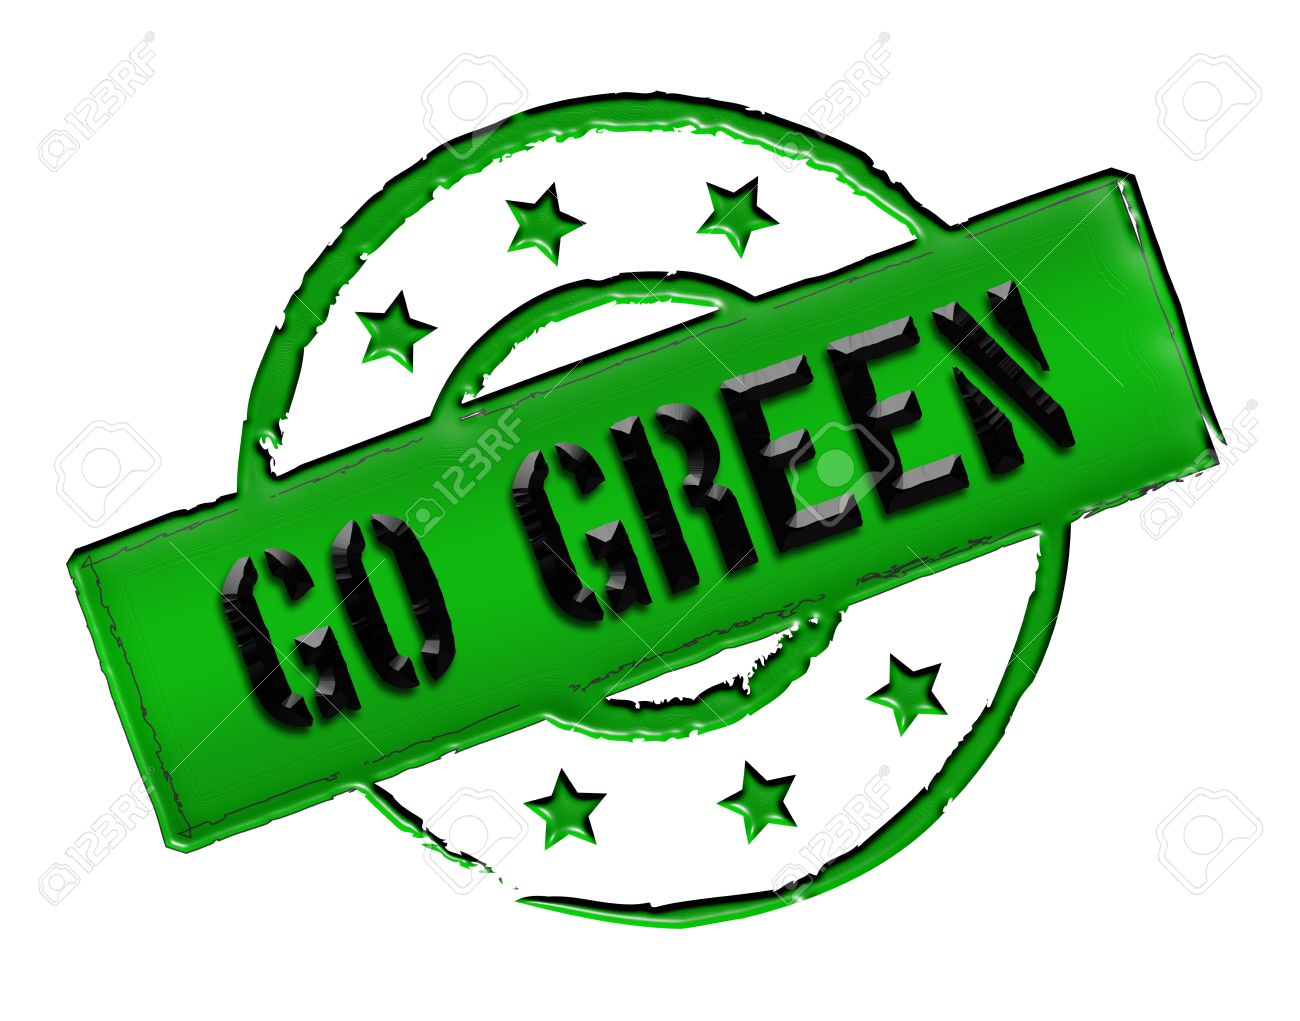 go green clip art pictures - photo #22